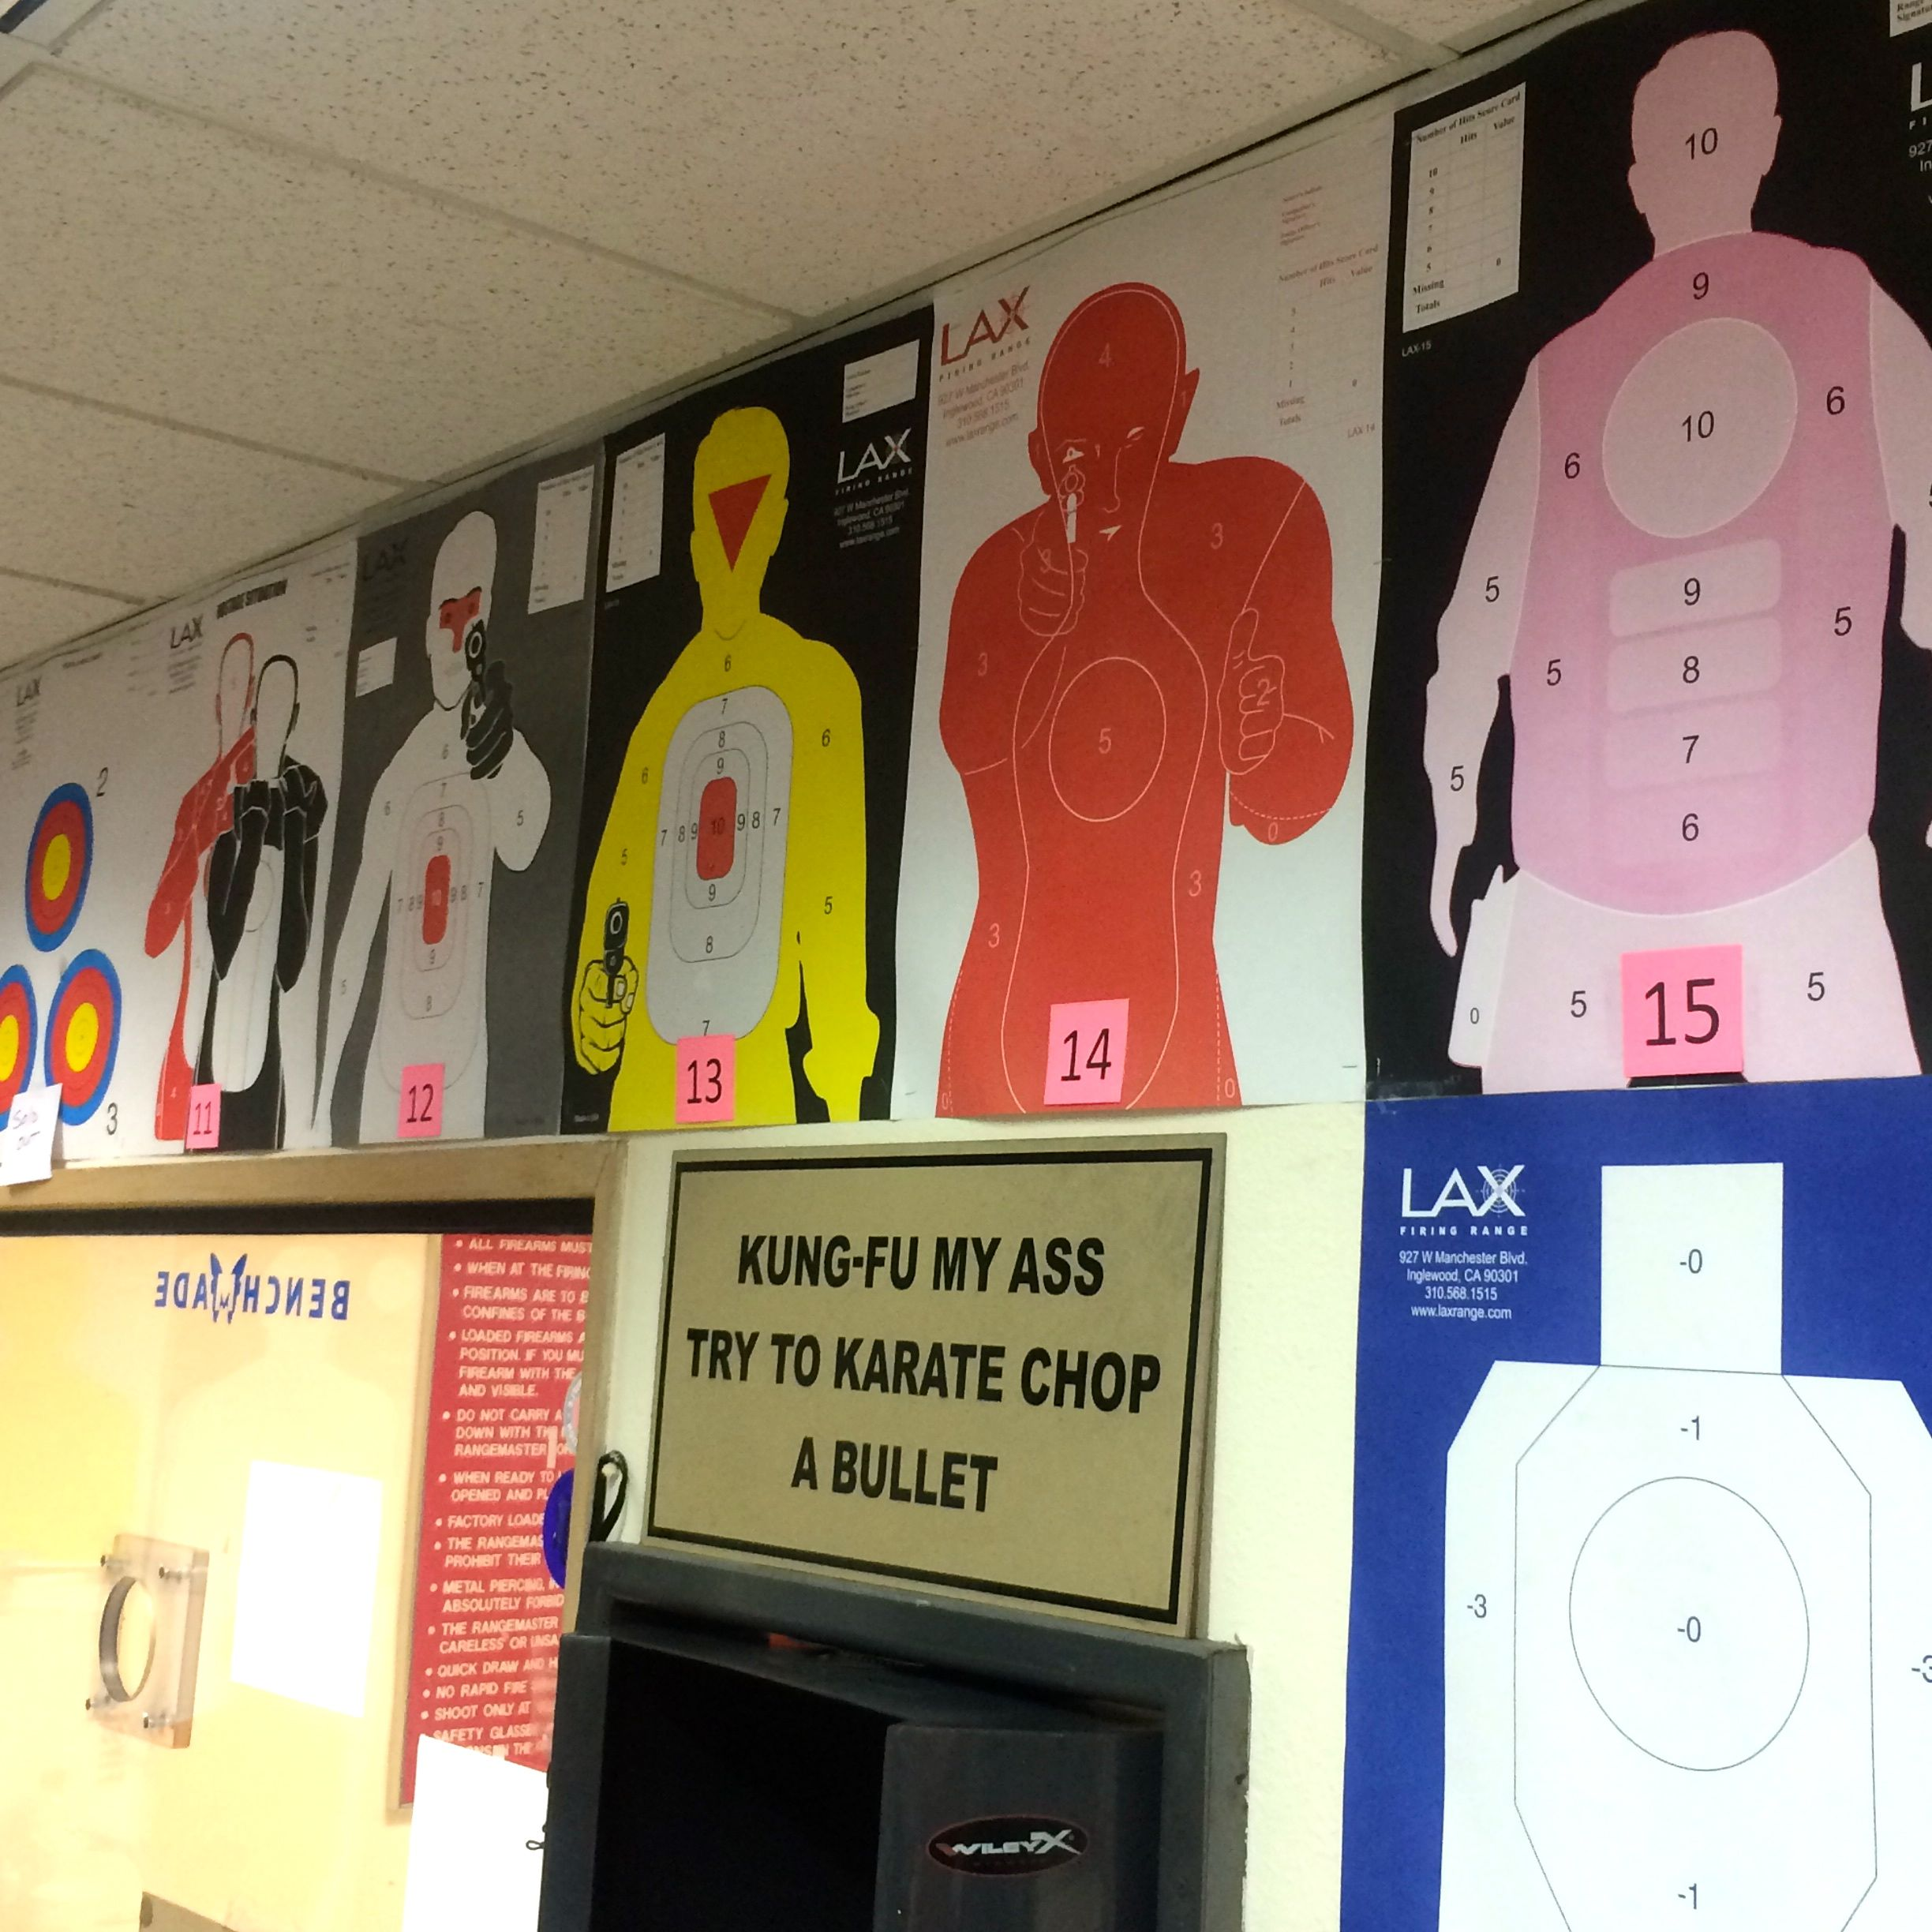 Available targets at the LAX Firing Range (photo by Nikki Kreuzer)